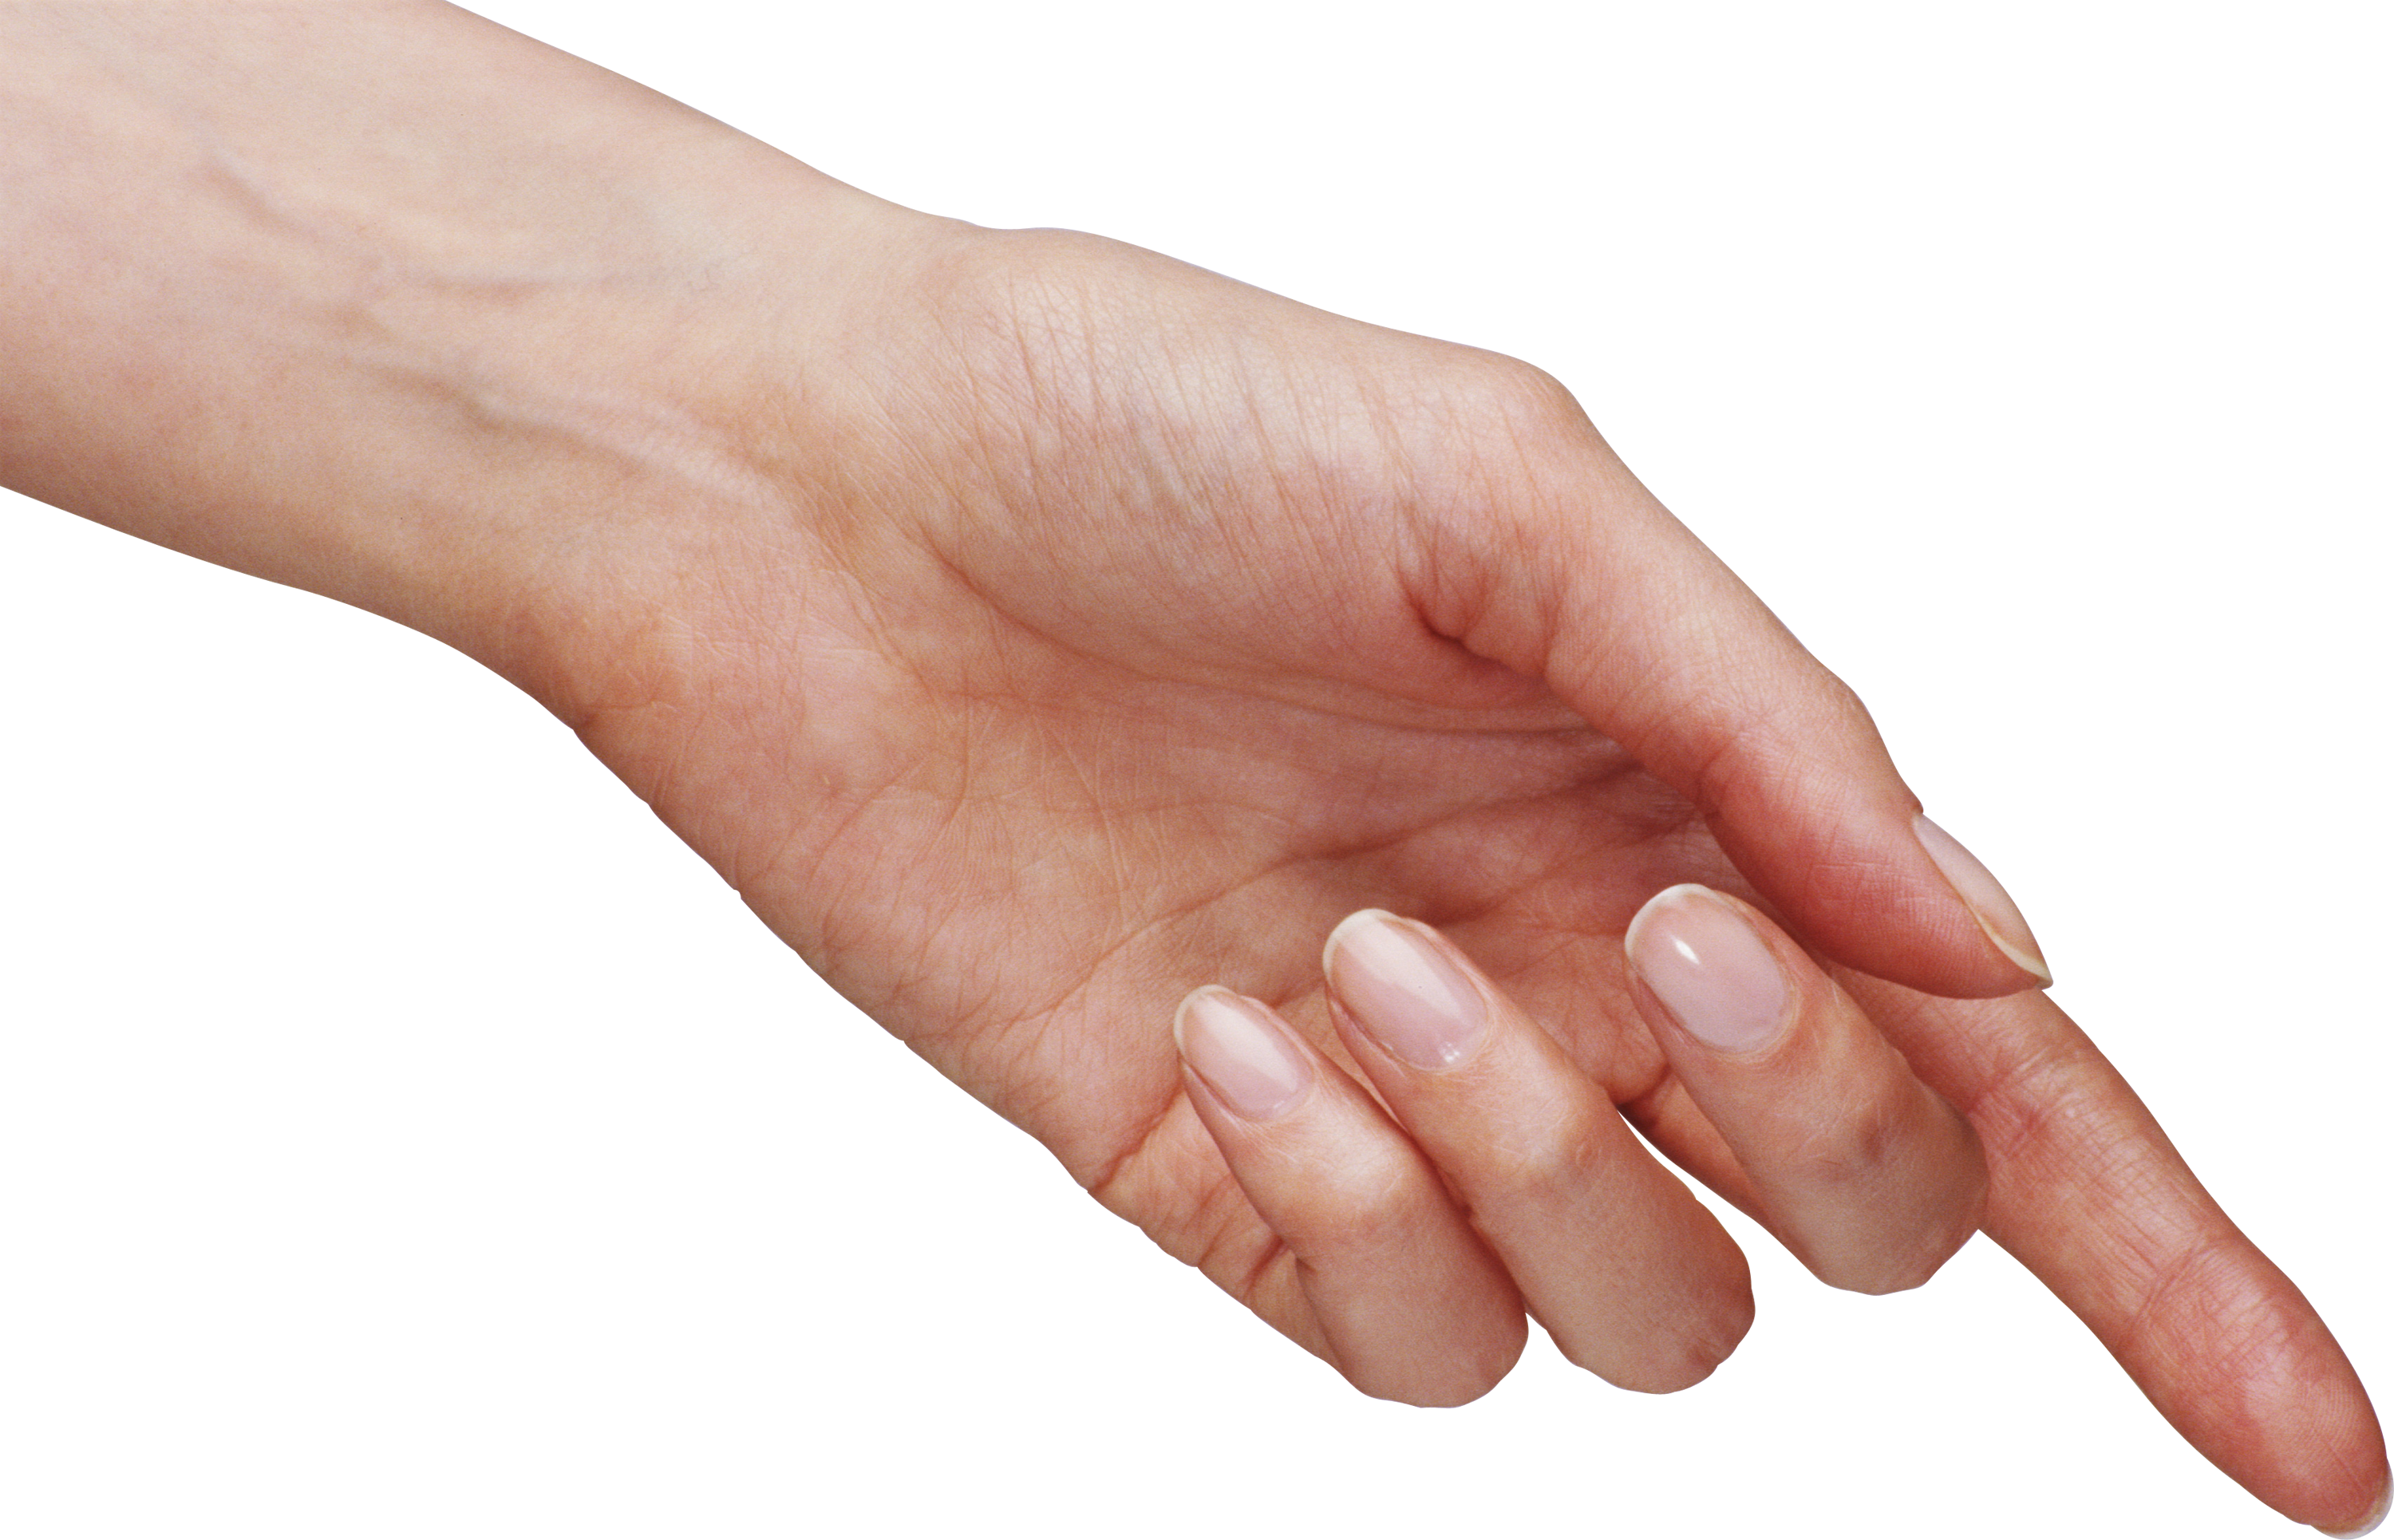 hands picture png